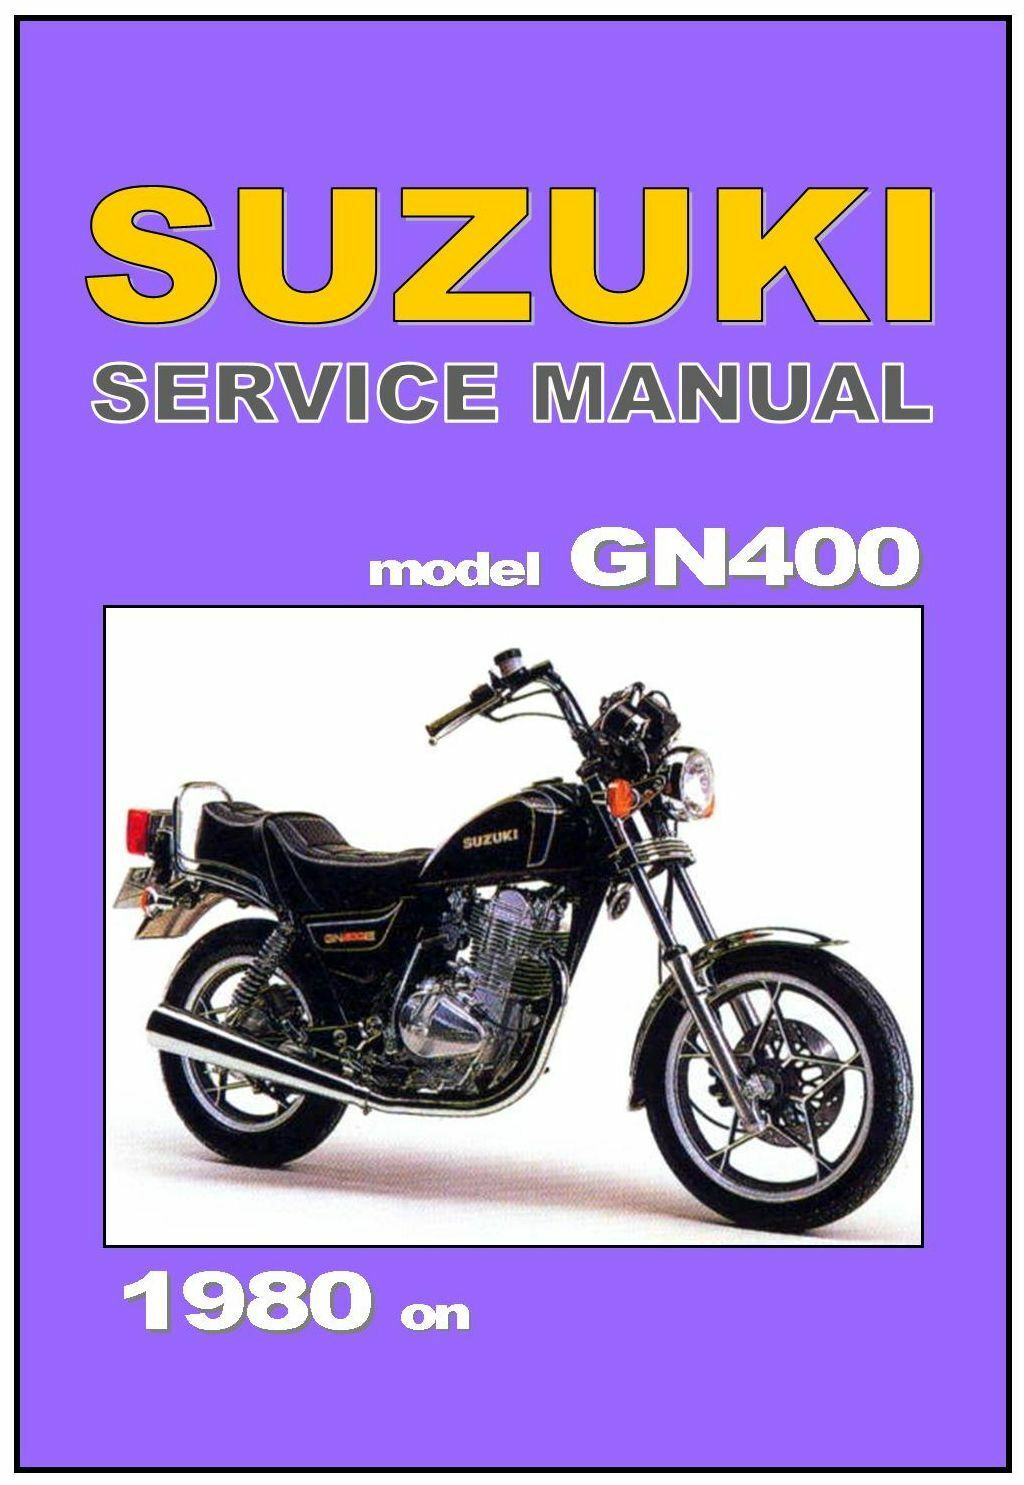 SUZUKI Workshop Manual GN400 1980 1981 1982 1983 1984 1985 1986 1987 1988 &  1989 1 of 4 See More